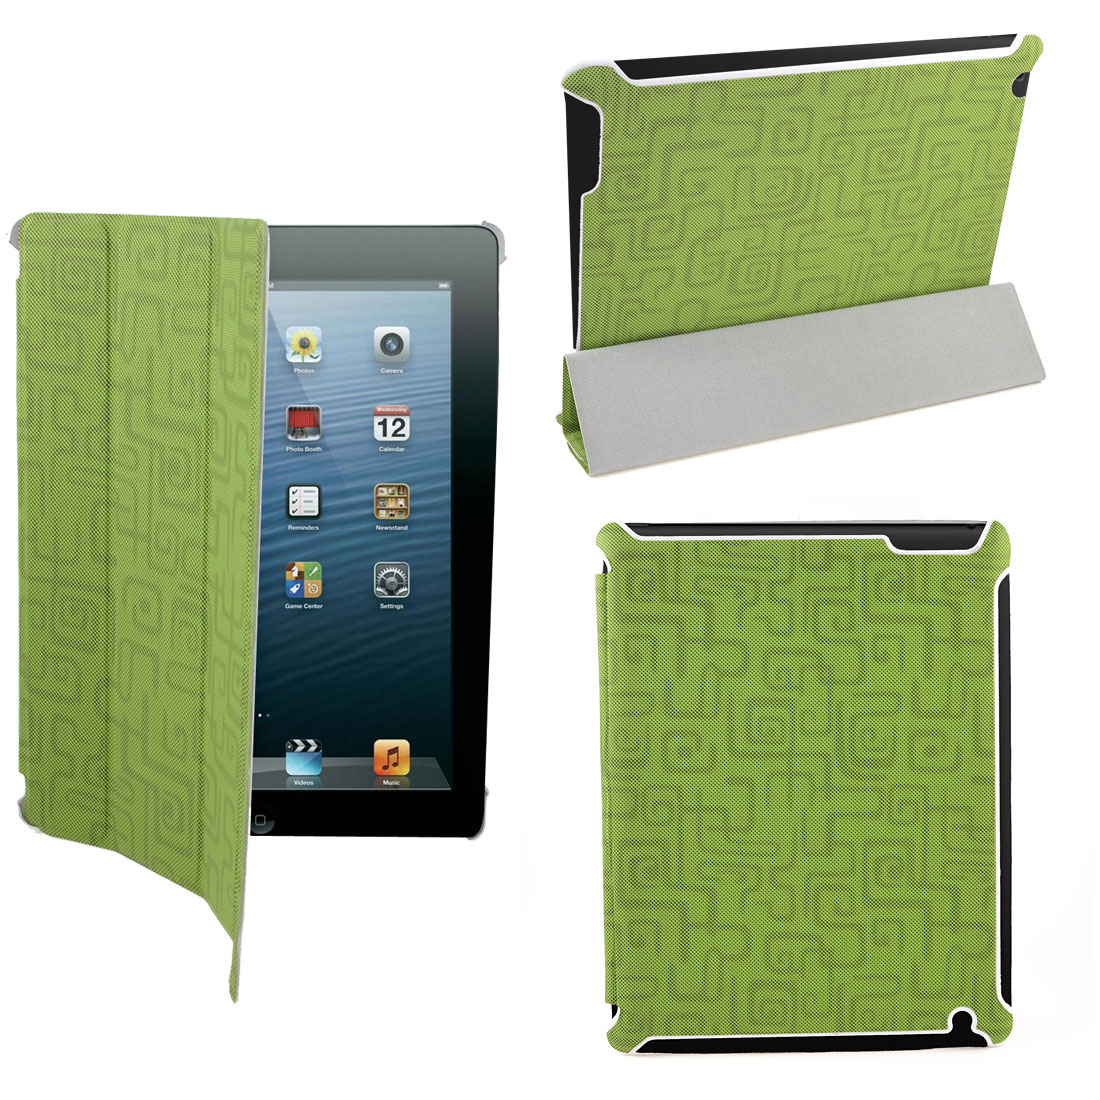 Gray Faux Leather Inner Folio Flip Case Cover Smart Stand Green for iPad 2 2nd